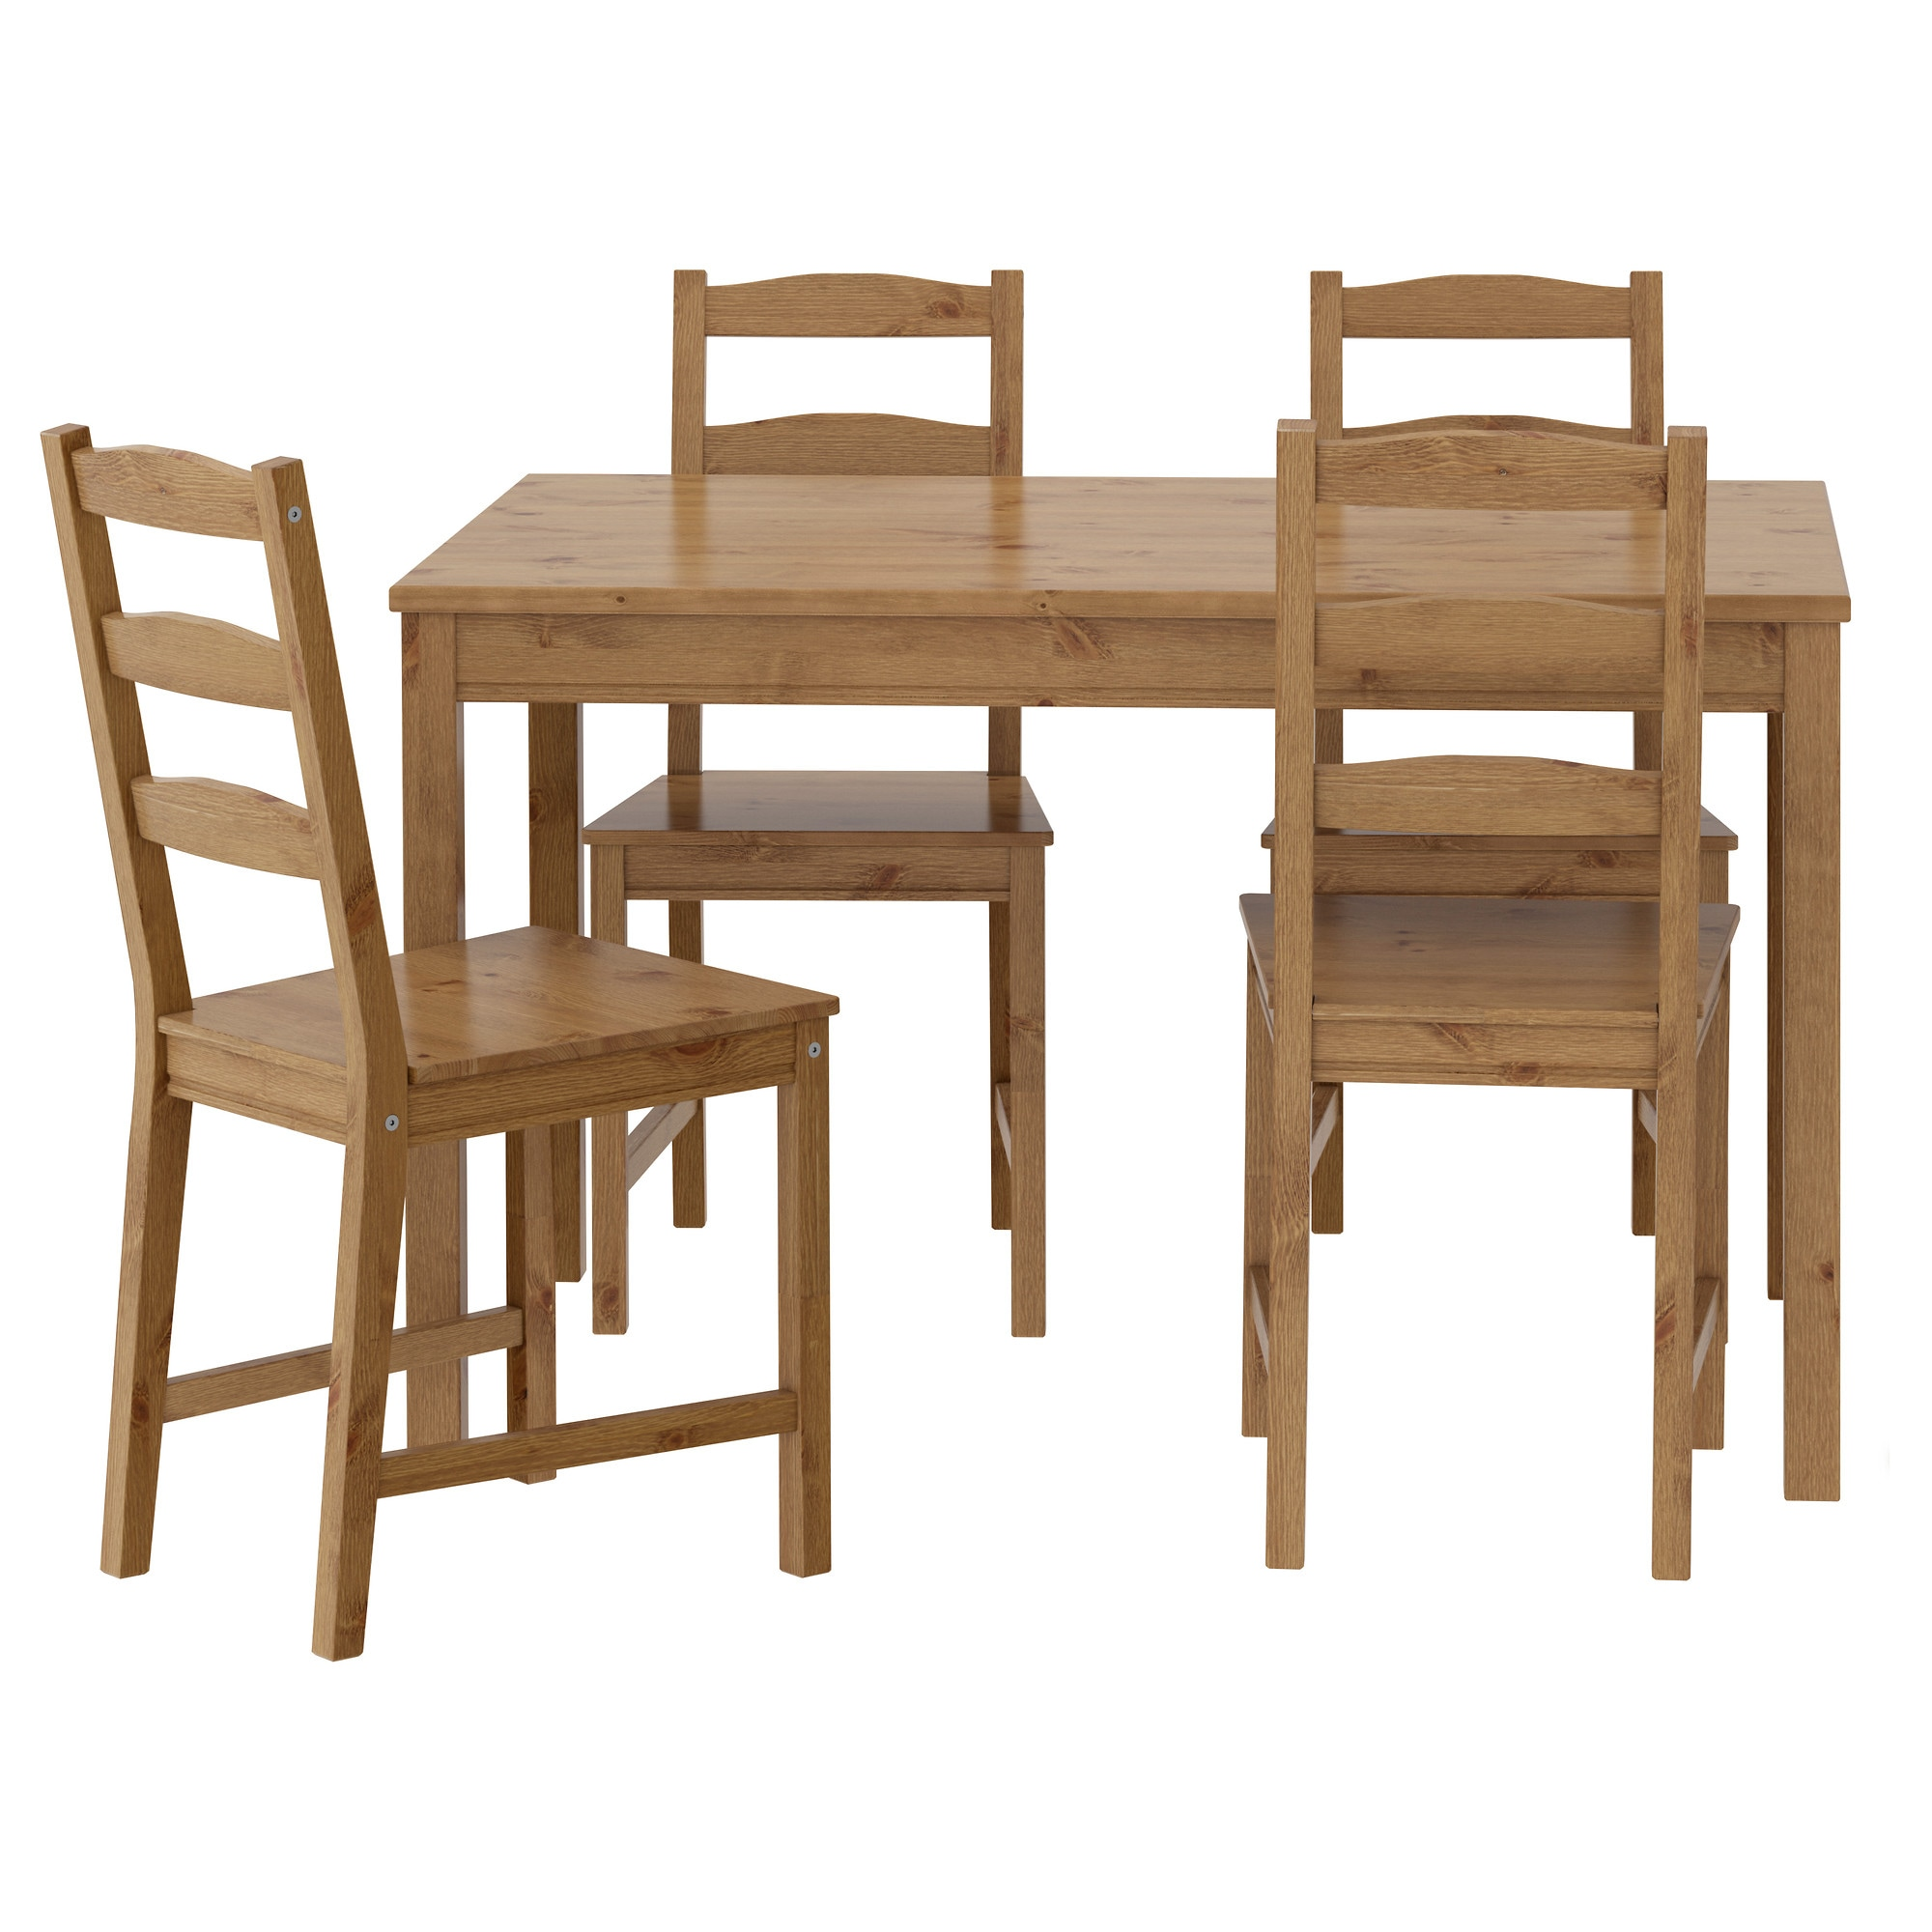 Perfect JOKKMOKK Table And 4 Chairs   IKEA Part 10